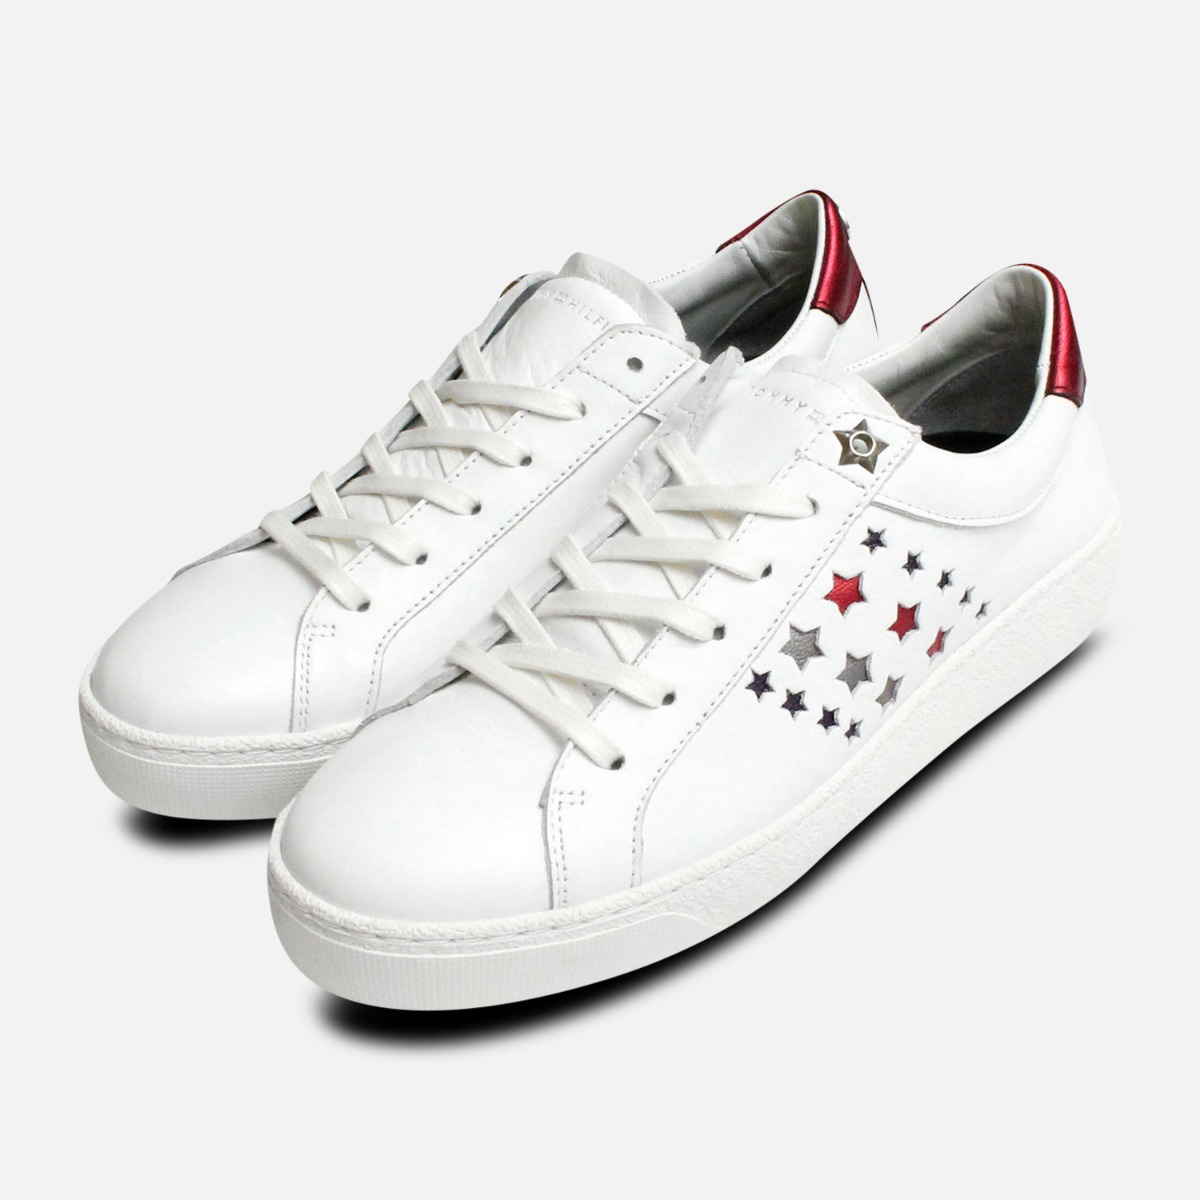 Tommy Hilfiger Star Suzie Trainers in